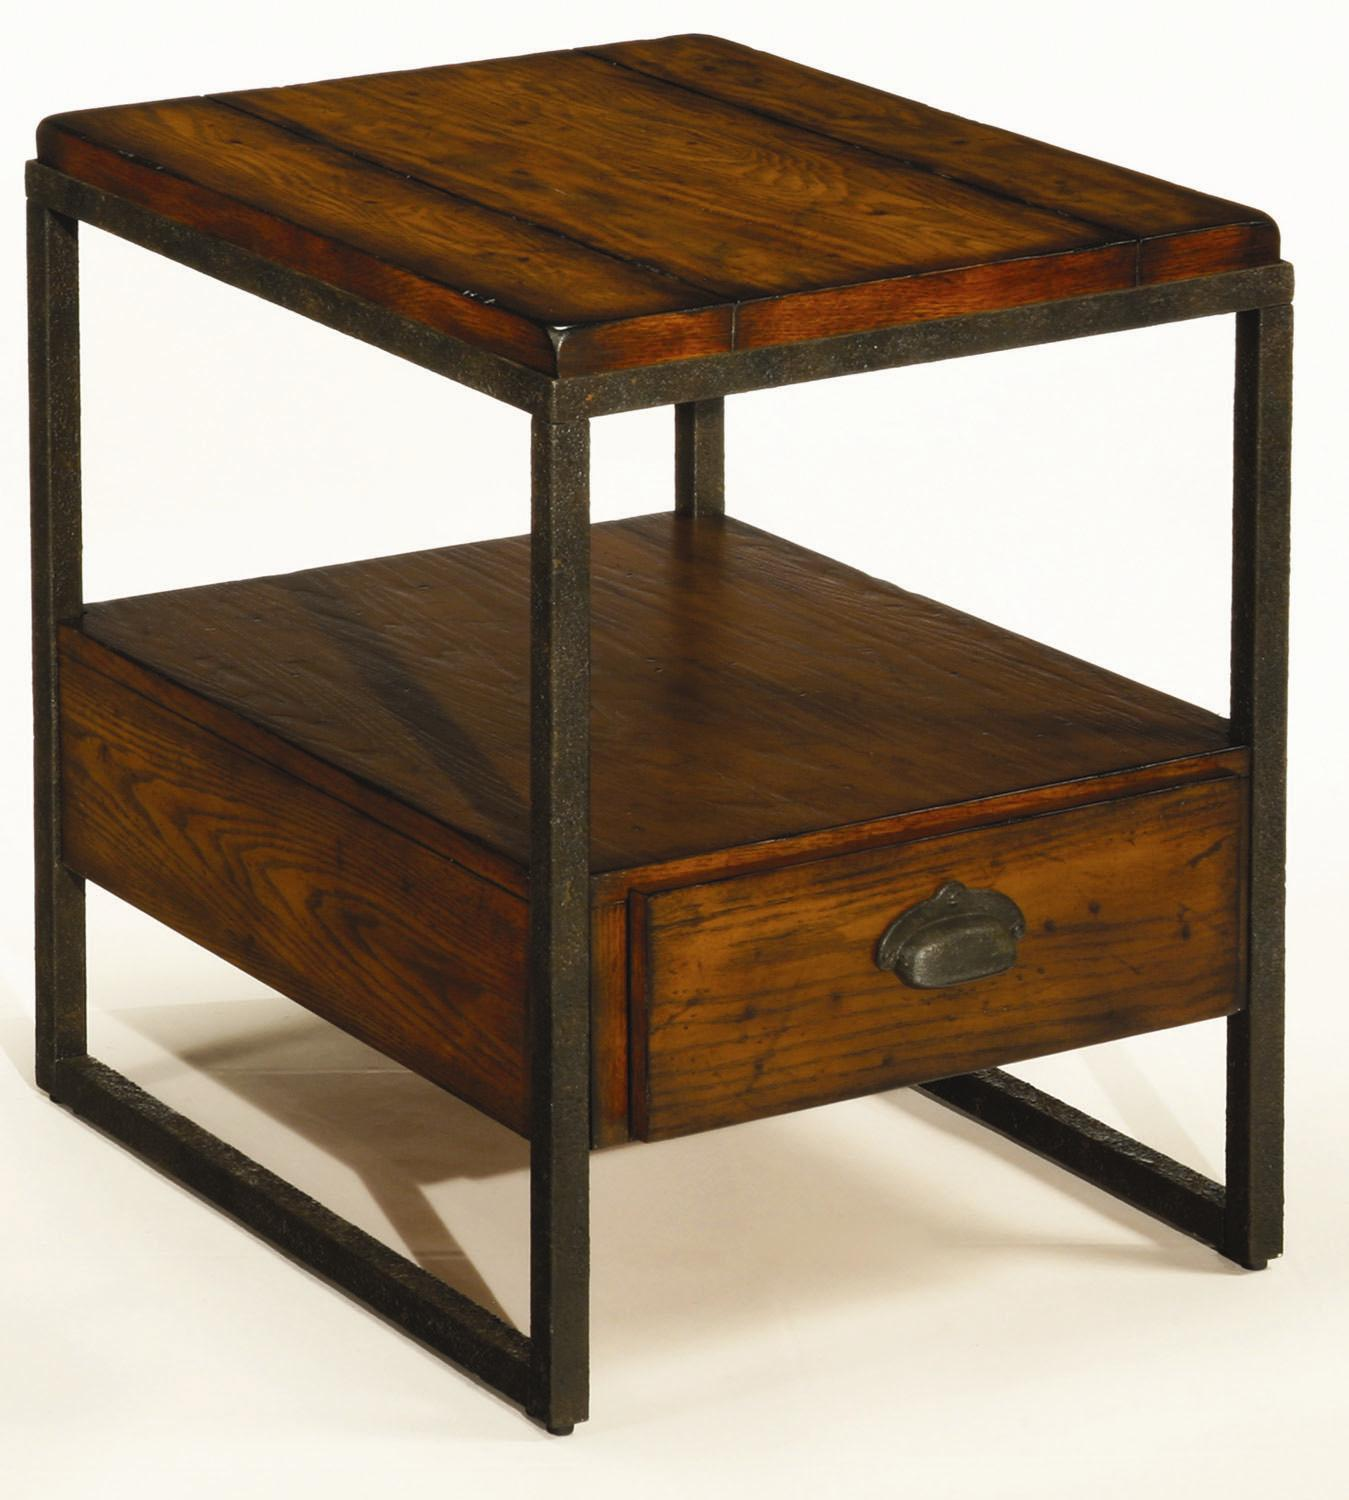 Hammary Baja Rectangular Drawer End Table - Item Number: T2075222-00